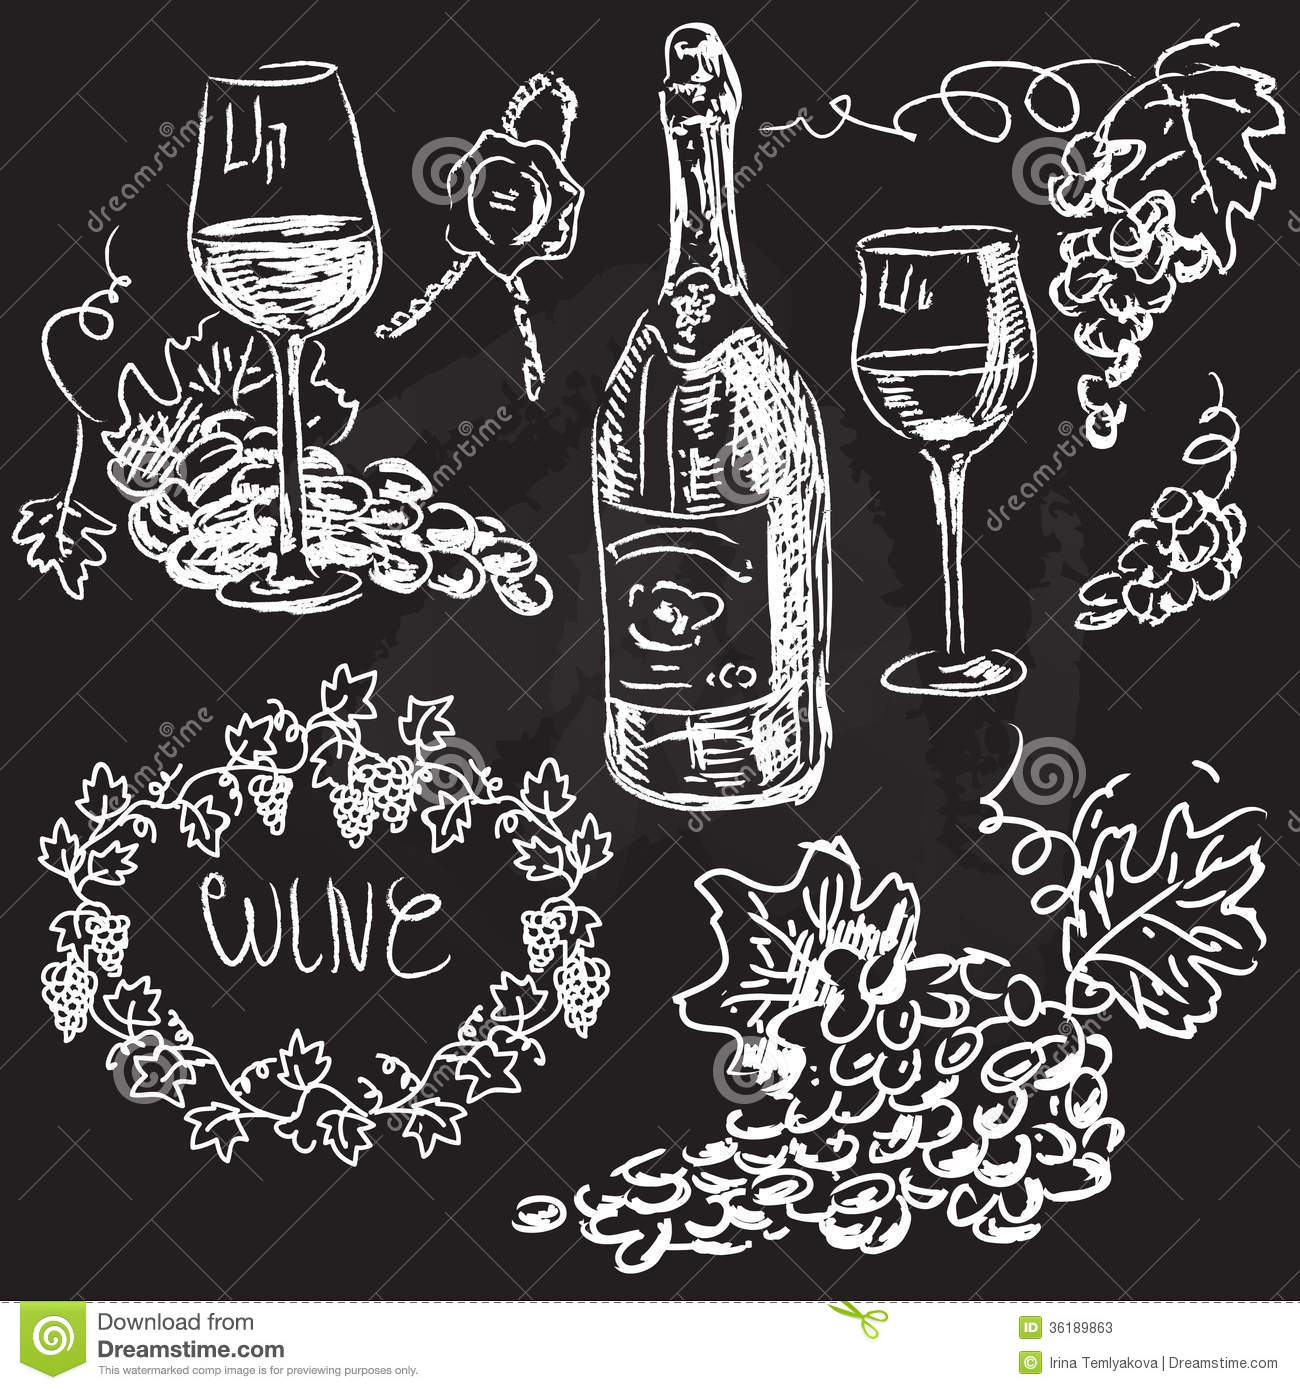 Hand drawn vector set wine and winemaking stock photos for Wine chalkboard art